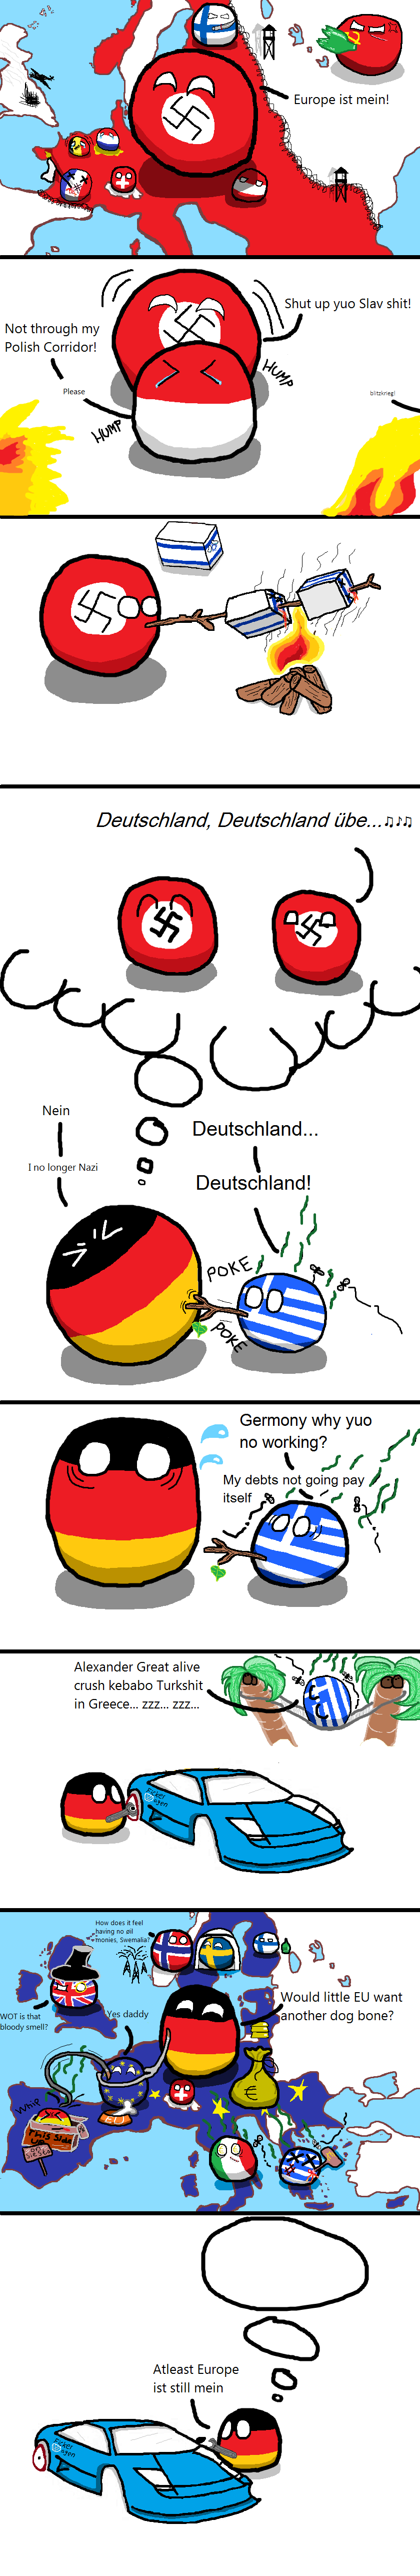 Germany's Only Desire